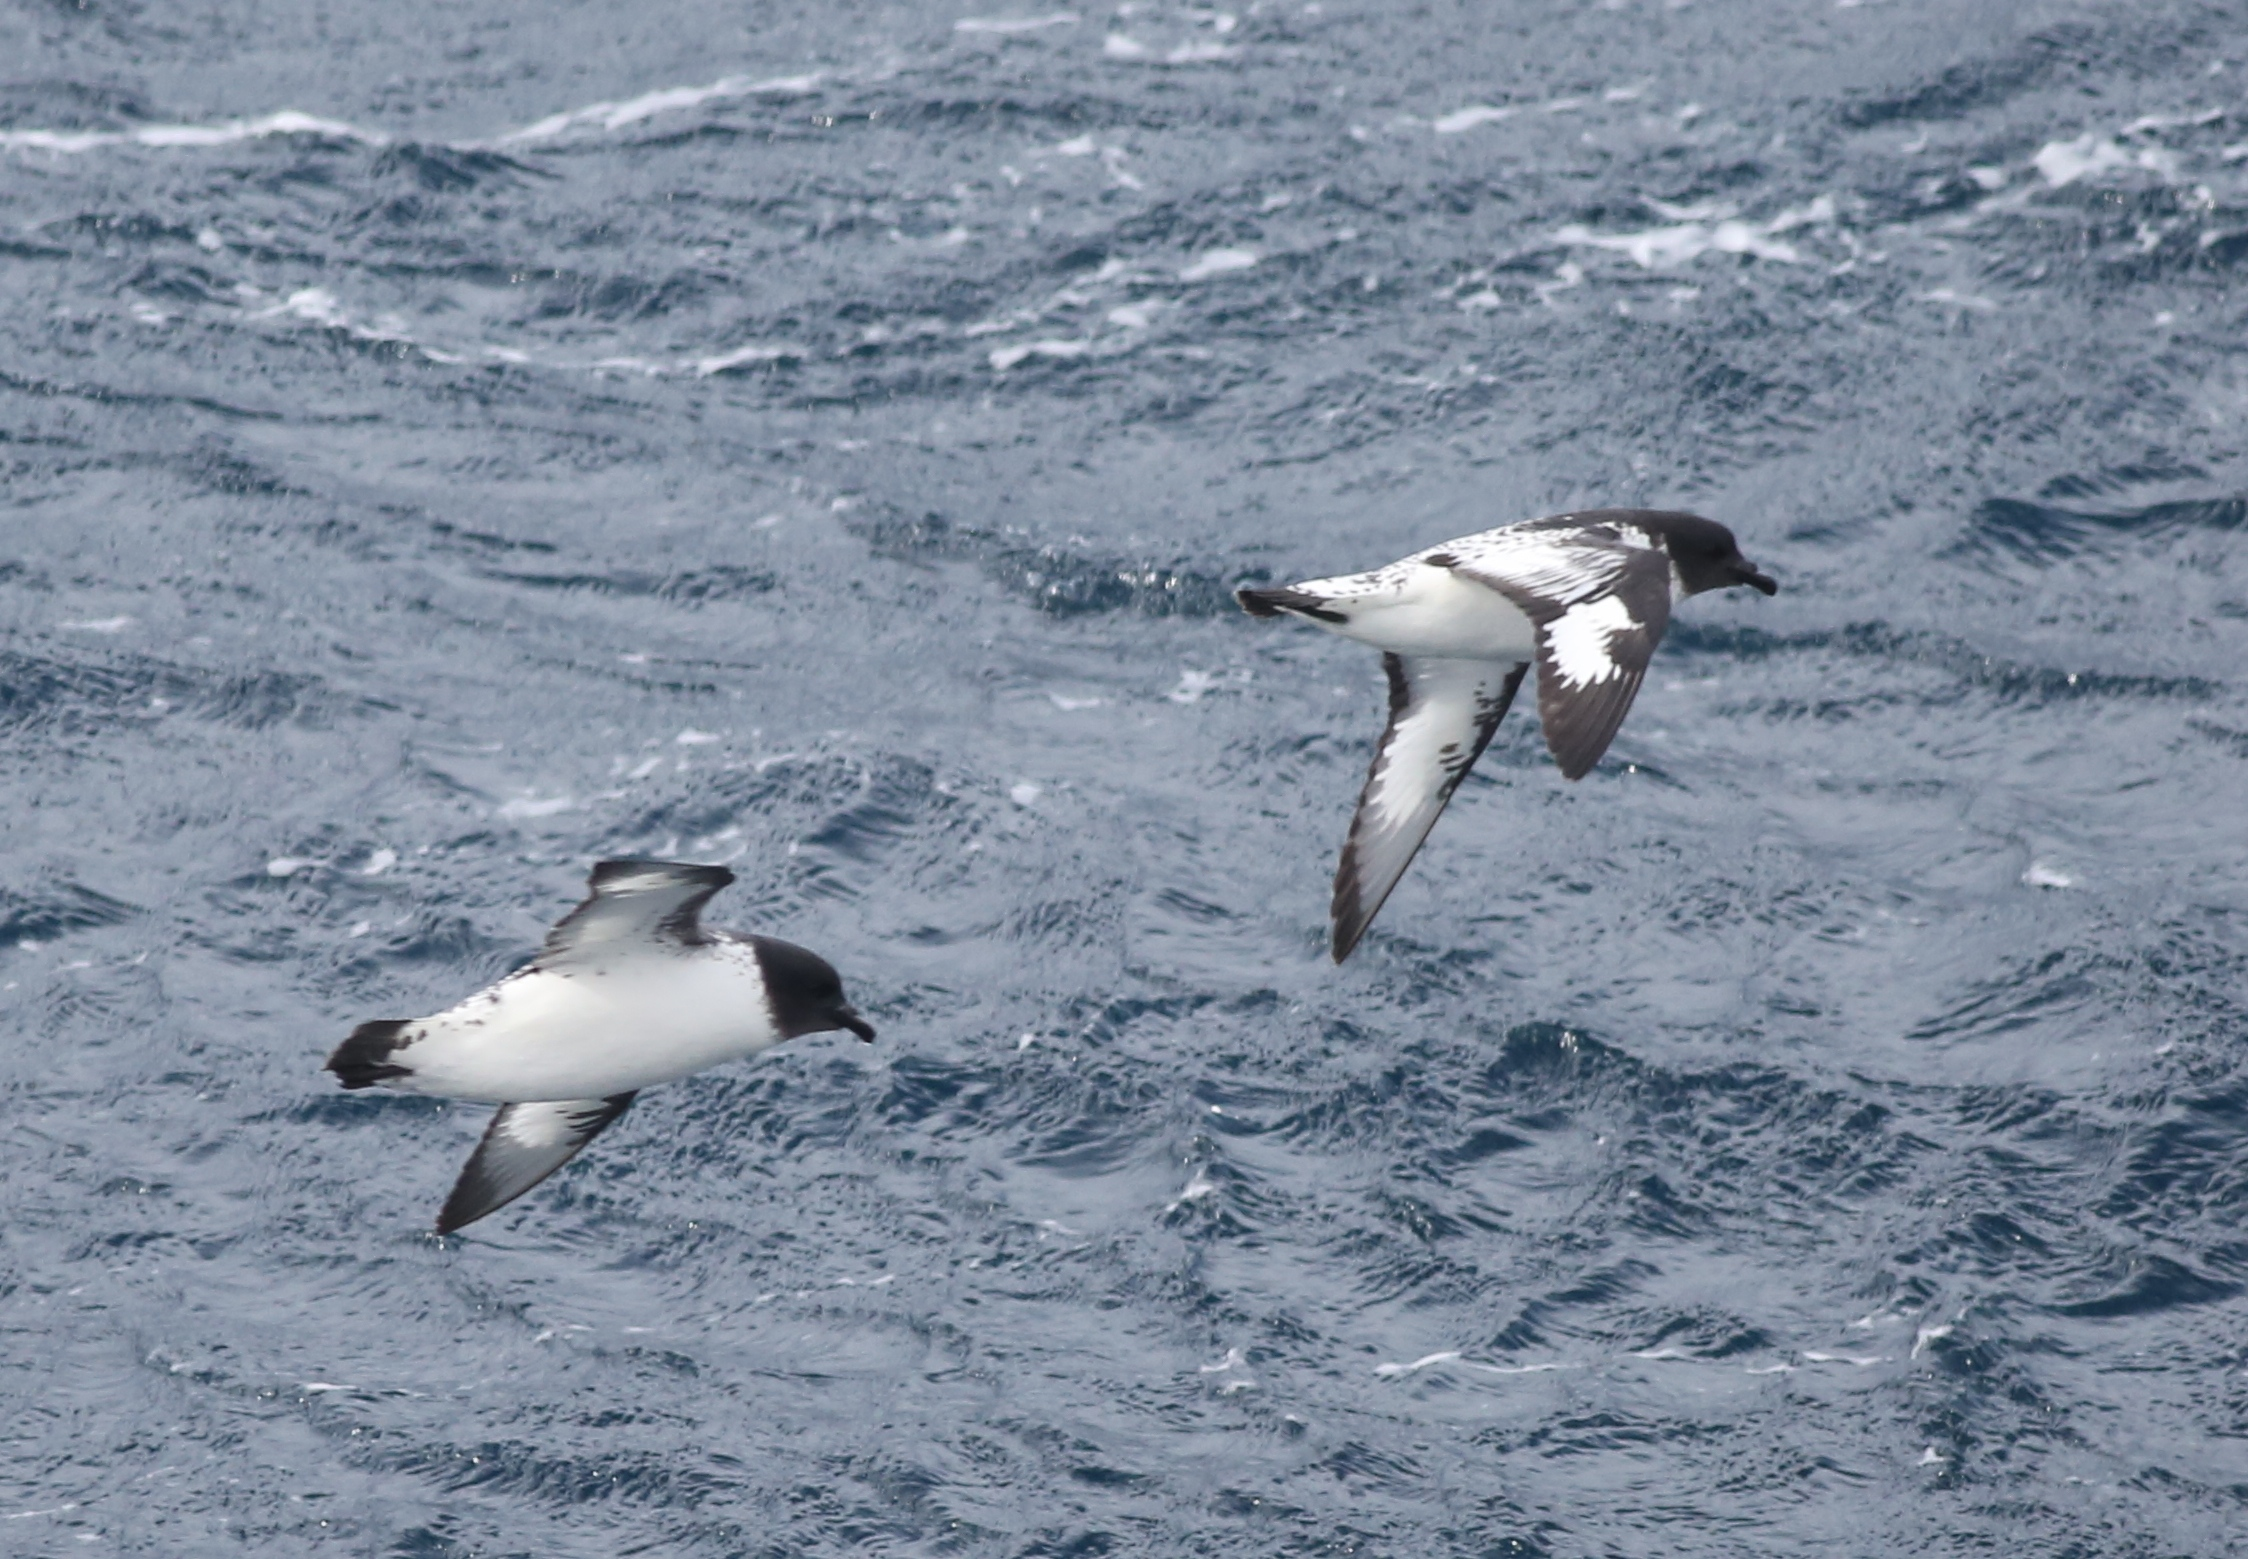 "The distinctive black-and-white wings of cape petrels, one of the Southern Ocean's most common and beautiful birds, had already become a regular sight out our cabin window. All the way to Antarctica we would watch the petrels (which are sometimes called pintado, meaning ""painted"") gliding effortlessly just inches above the waves, often in groups. After fledging, amazingly enough, they remain at sea for about six  years  before returning to land. At age seven they start spending four months per year on land to nest and lay one egg. They do that for the remaining 10 or 15 years of their life."